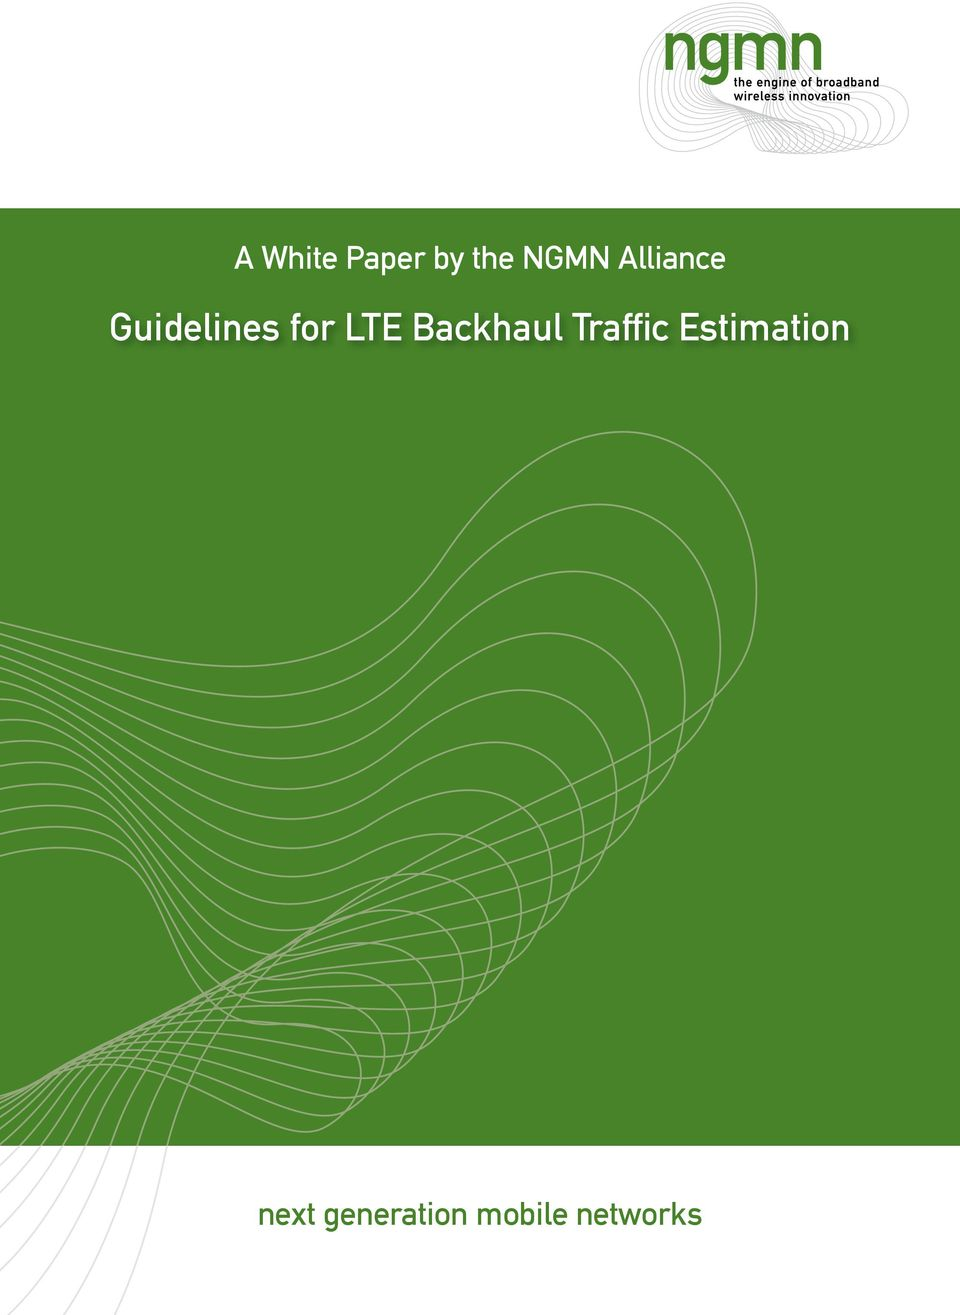 Backhaul Traffic Estimation